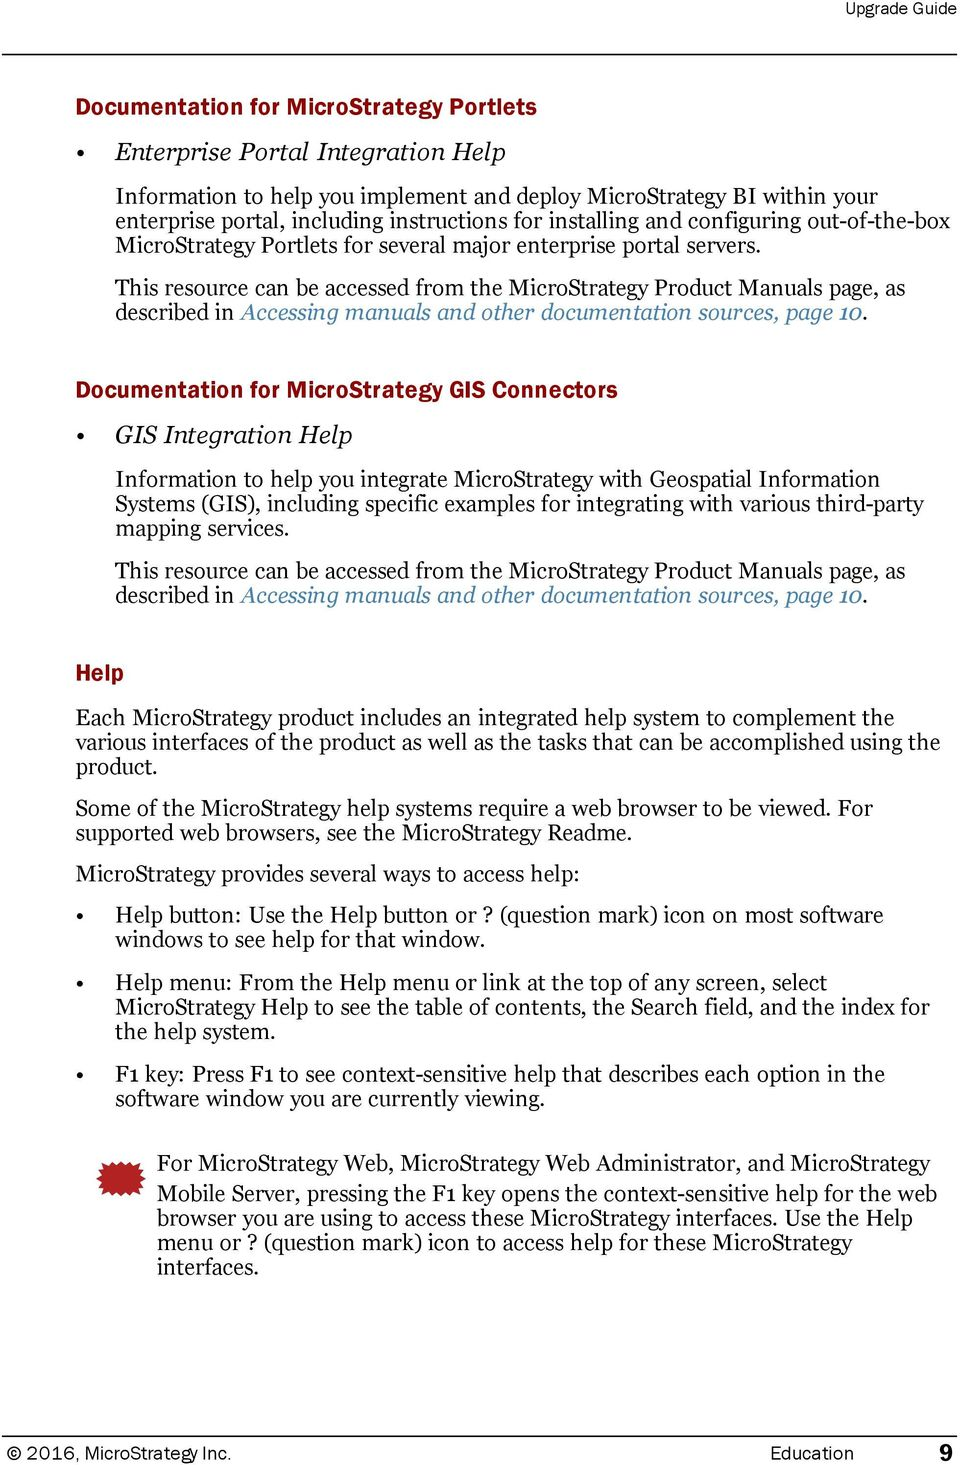 This resource can be accessed from the MicroStrategy Product Manuals page, as described in Accessing manuals and other documentation sources, page 10.